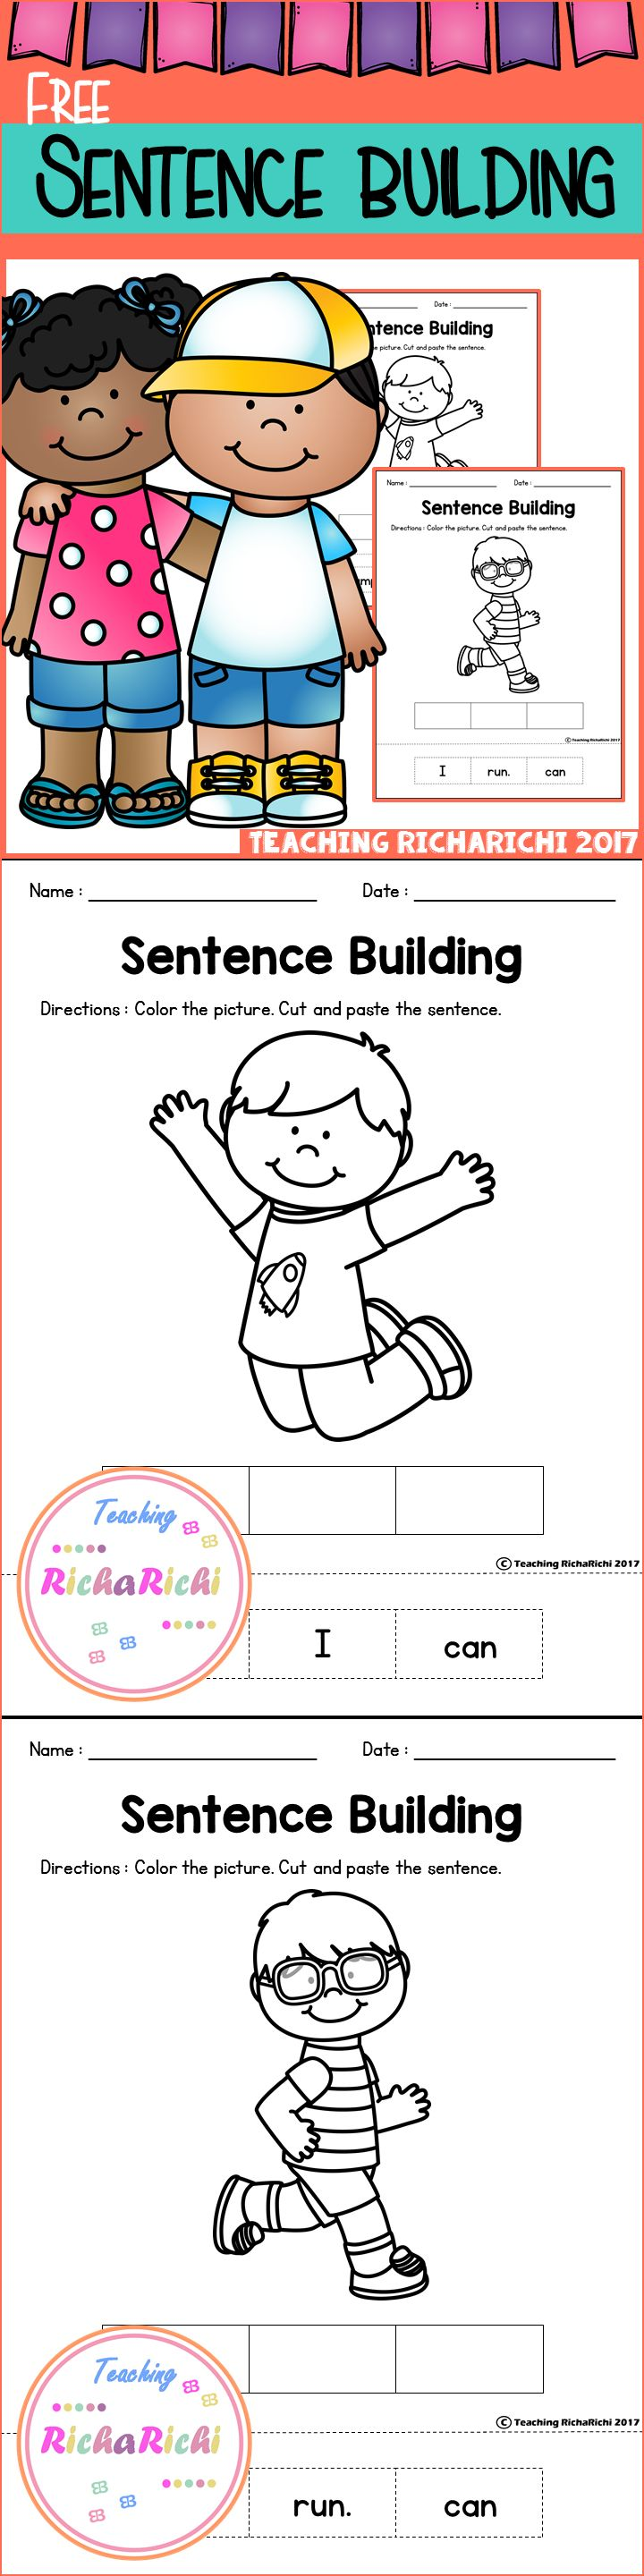 Freebies, Kindergarten, Pre-K, First grade, Worksheets, Printables , Lesson Plans, Sentence building, Fluency, Grammar, English, Activities, Kindergarten Worksheets, Education